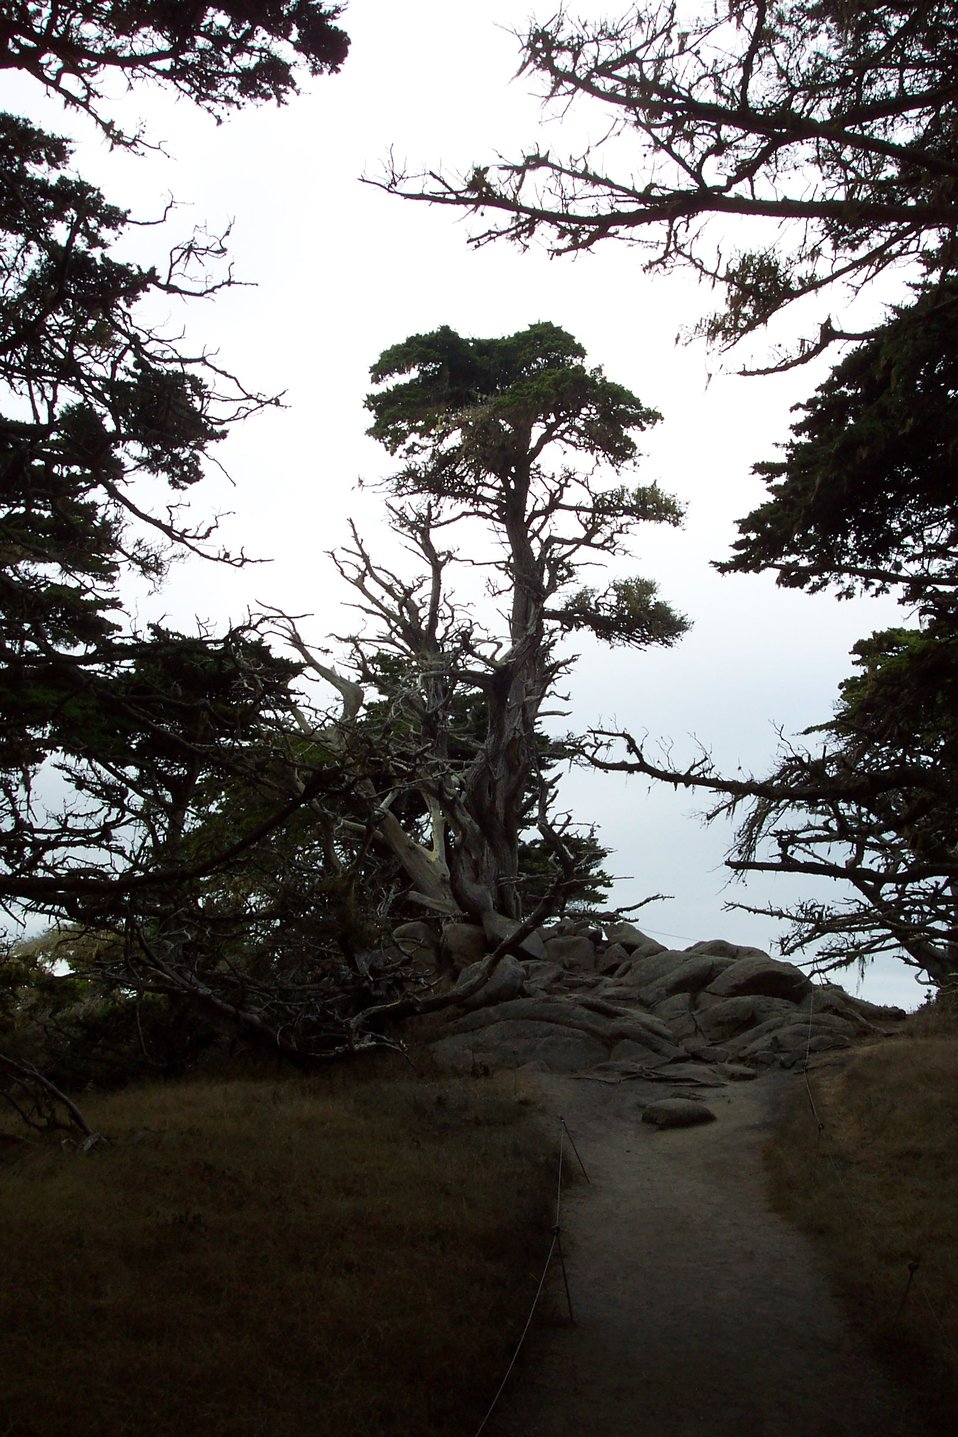 Monterey cypress on a Point Lobos Santa Lucia granodiorite outcrop.